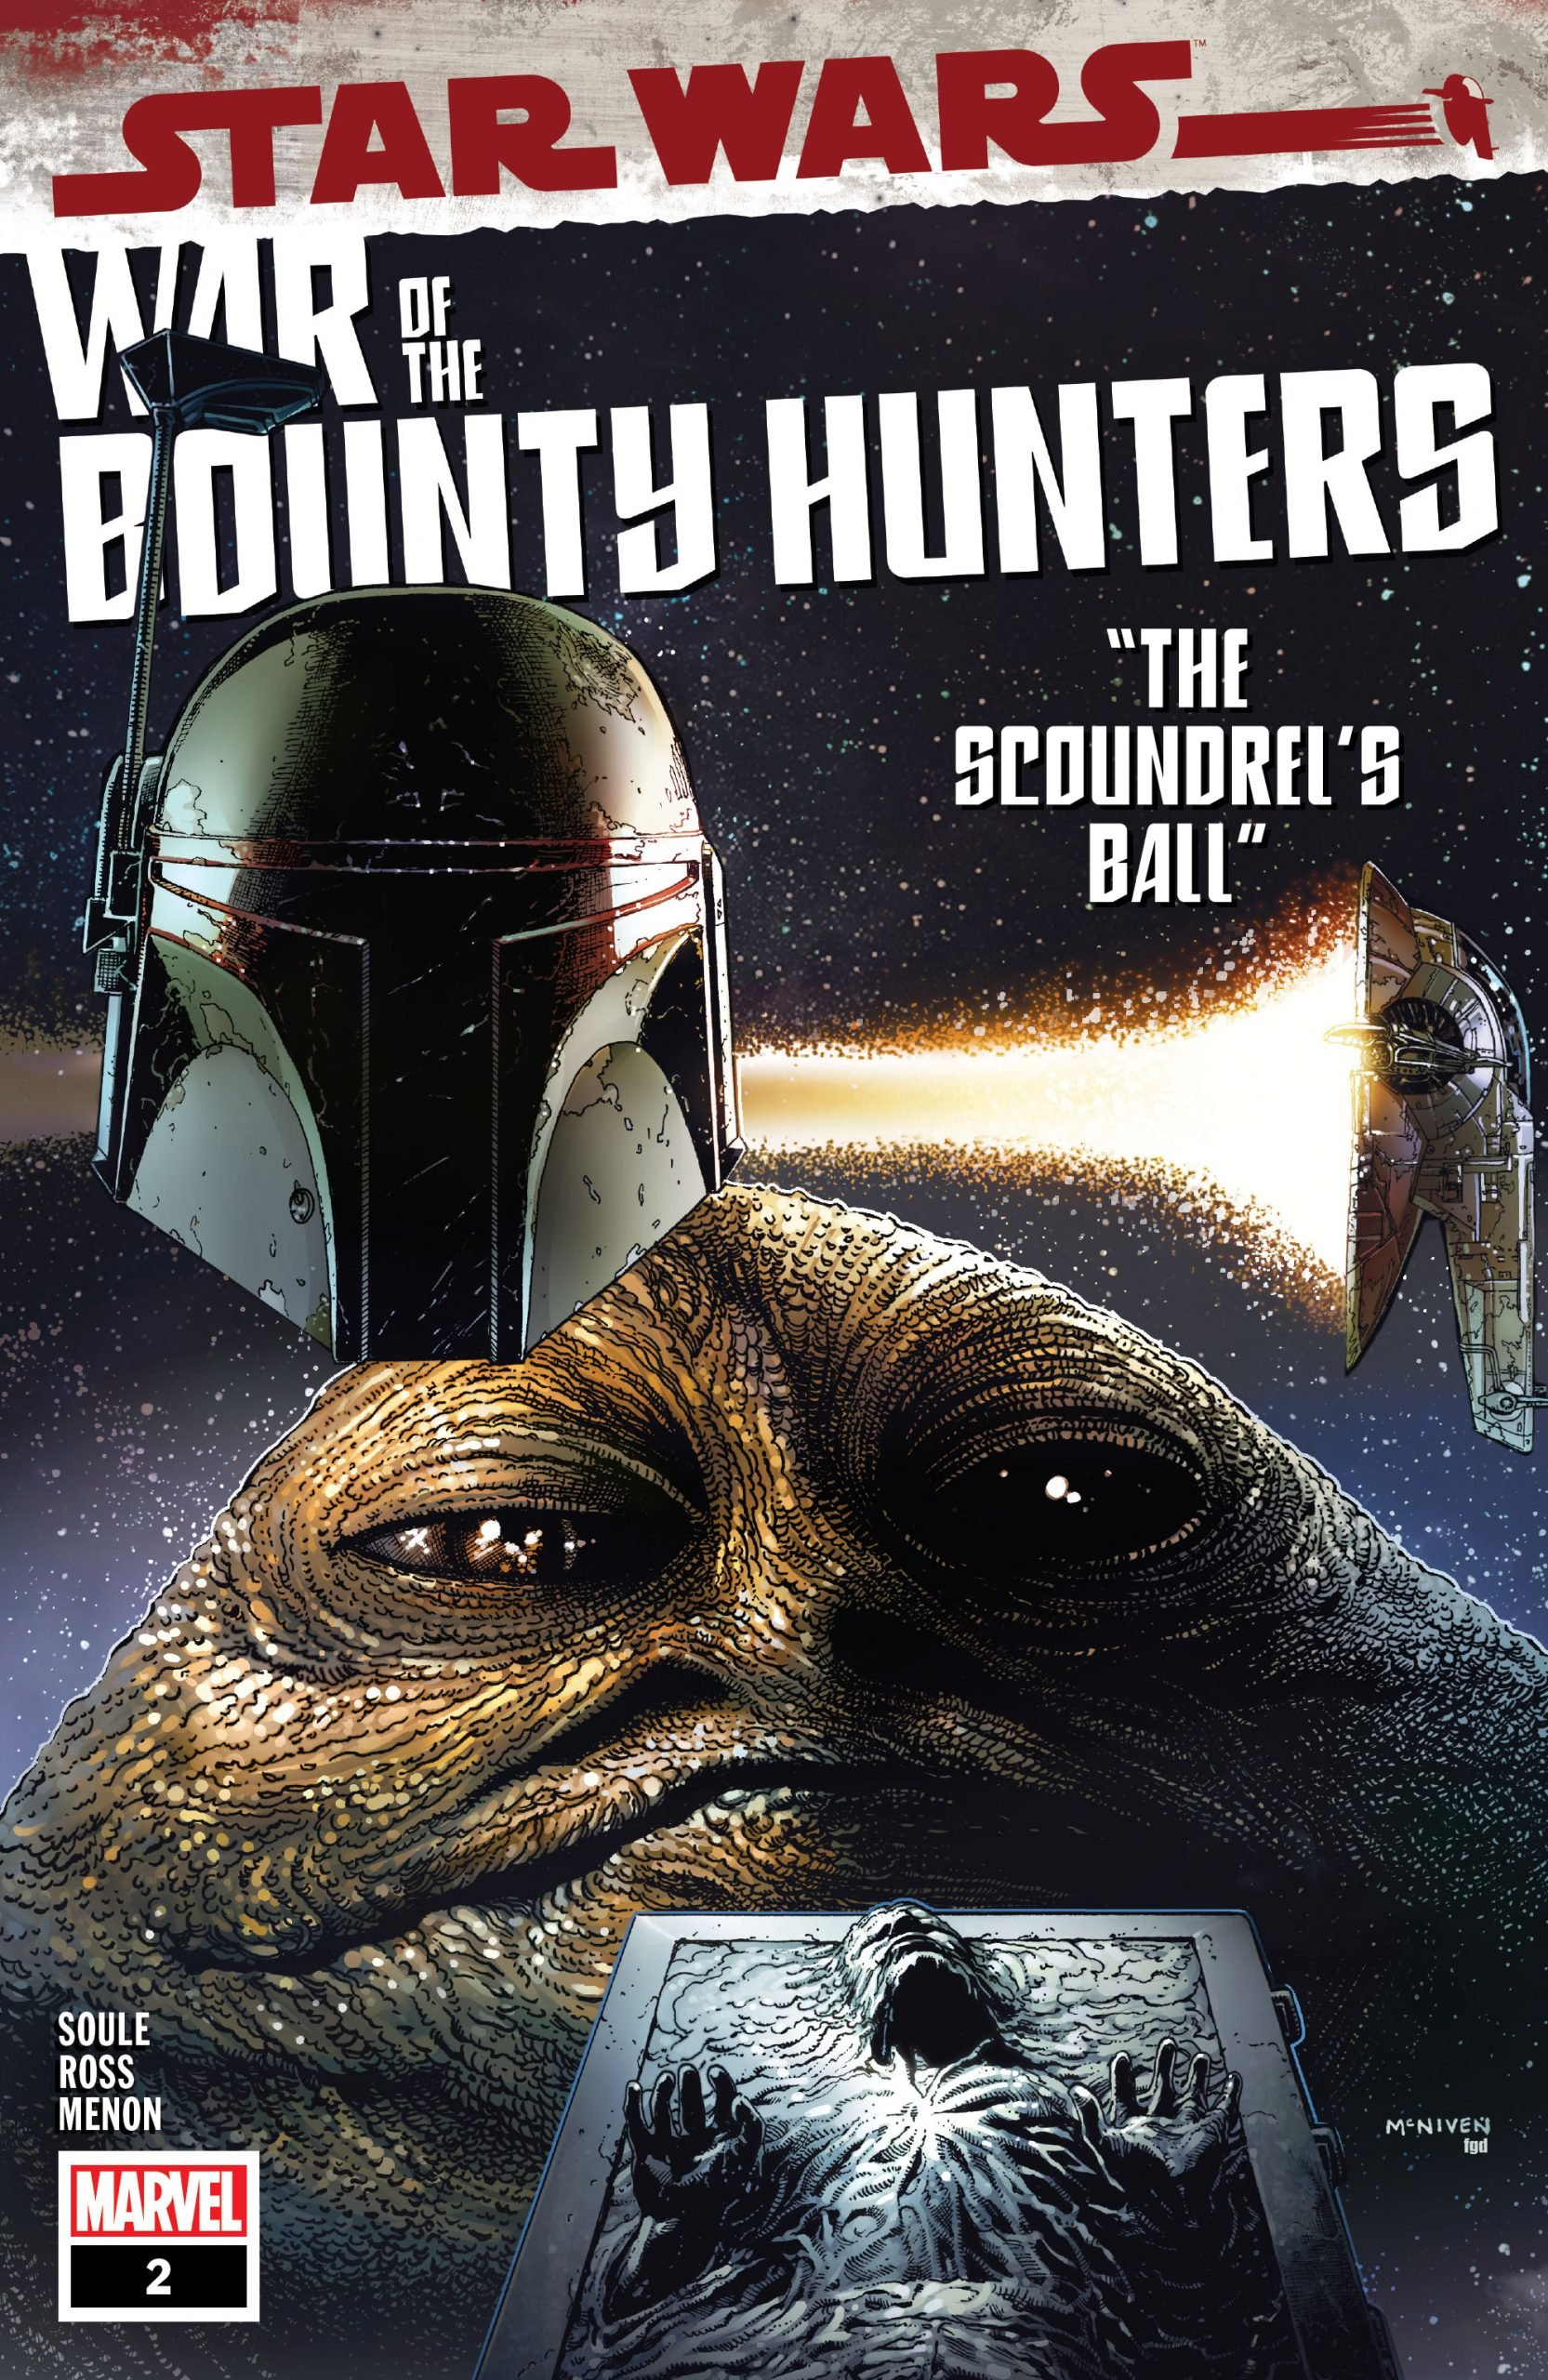 Star Wars War Of The Bounty Hunters 02 of 05 000 scaled 1 Recent Comic Cover Updates For The Week Ending 2021 07 23